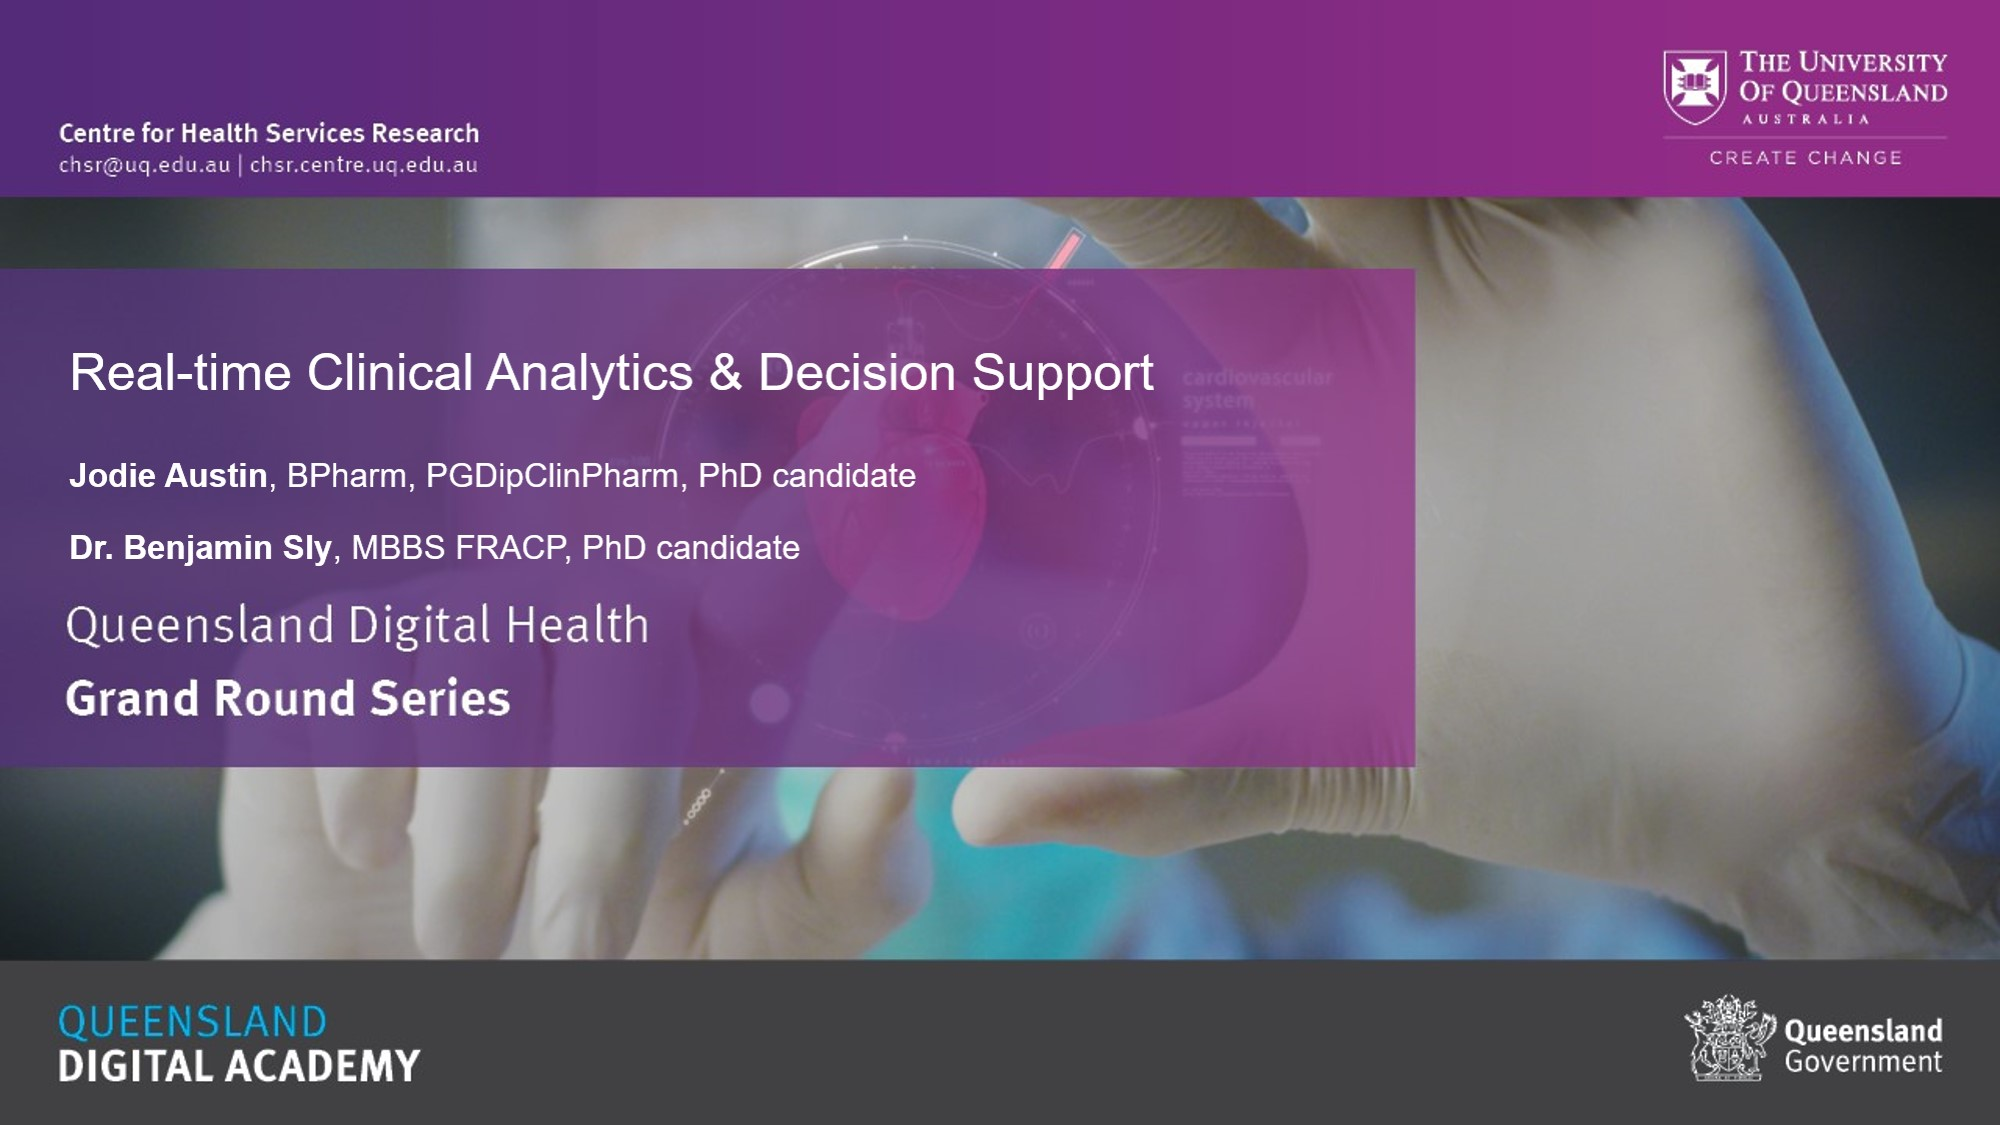 Real-time Clinical Analytics & Decision Support